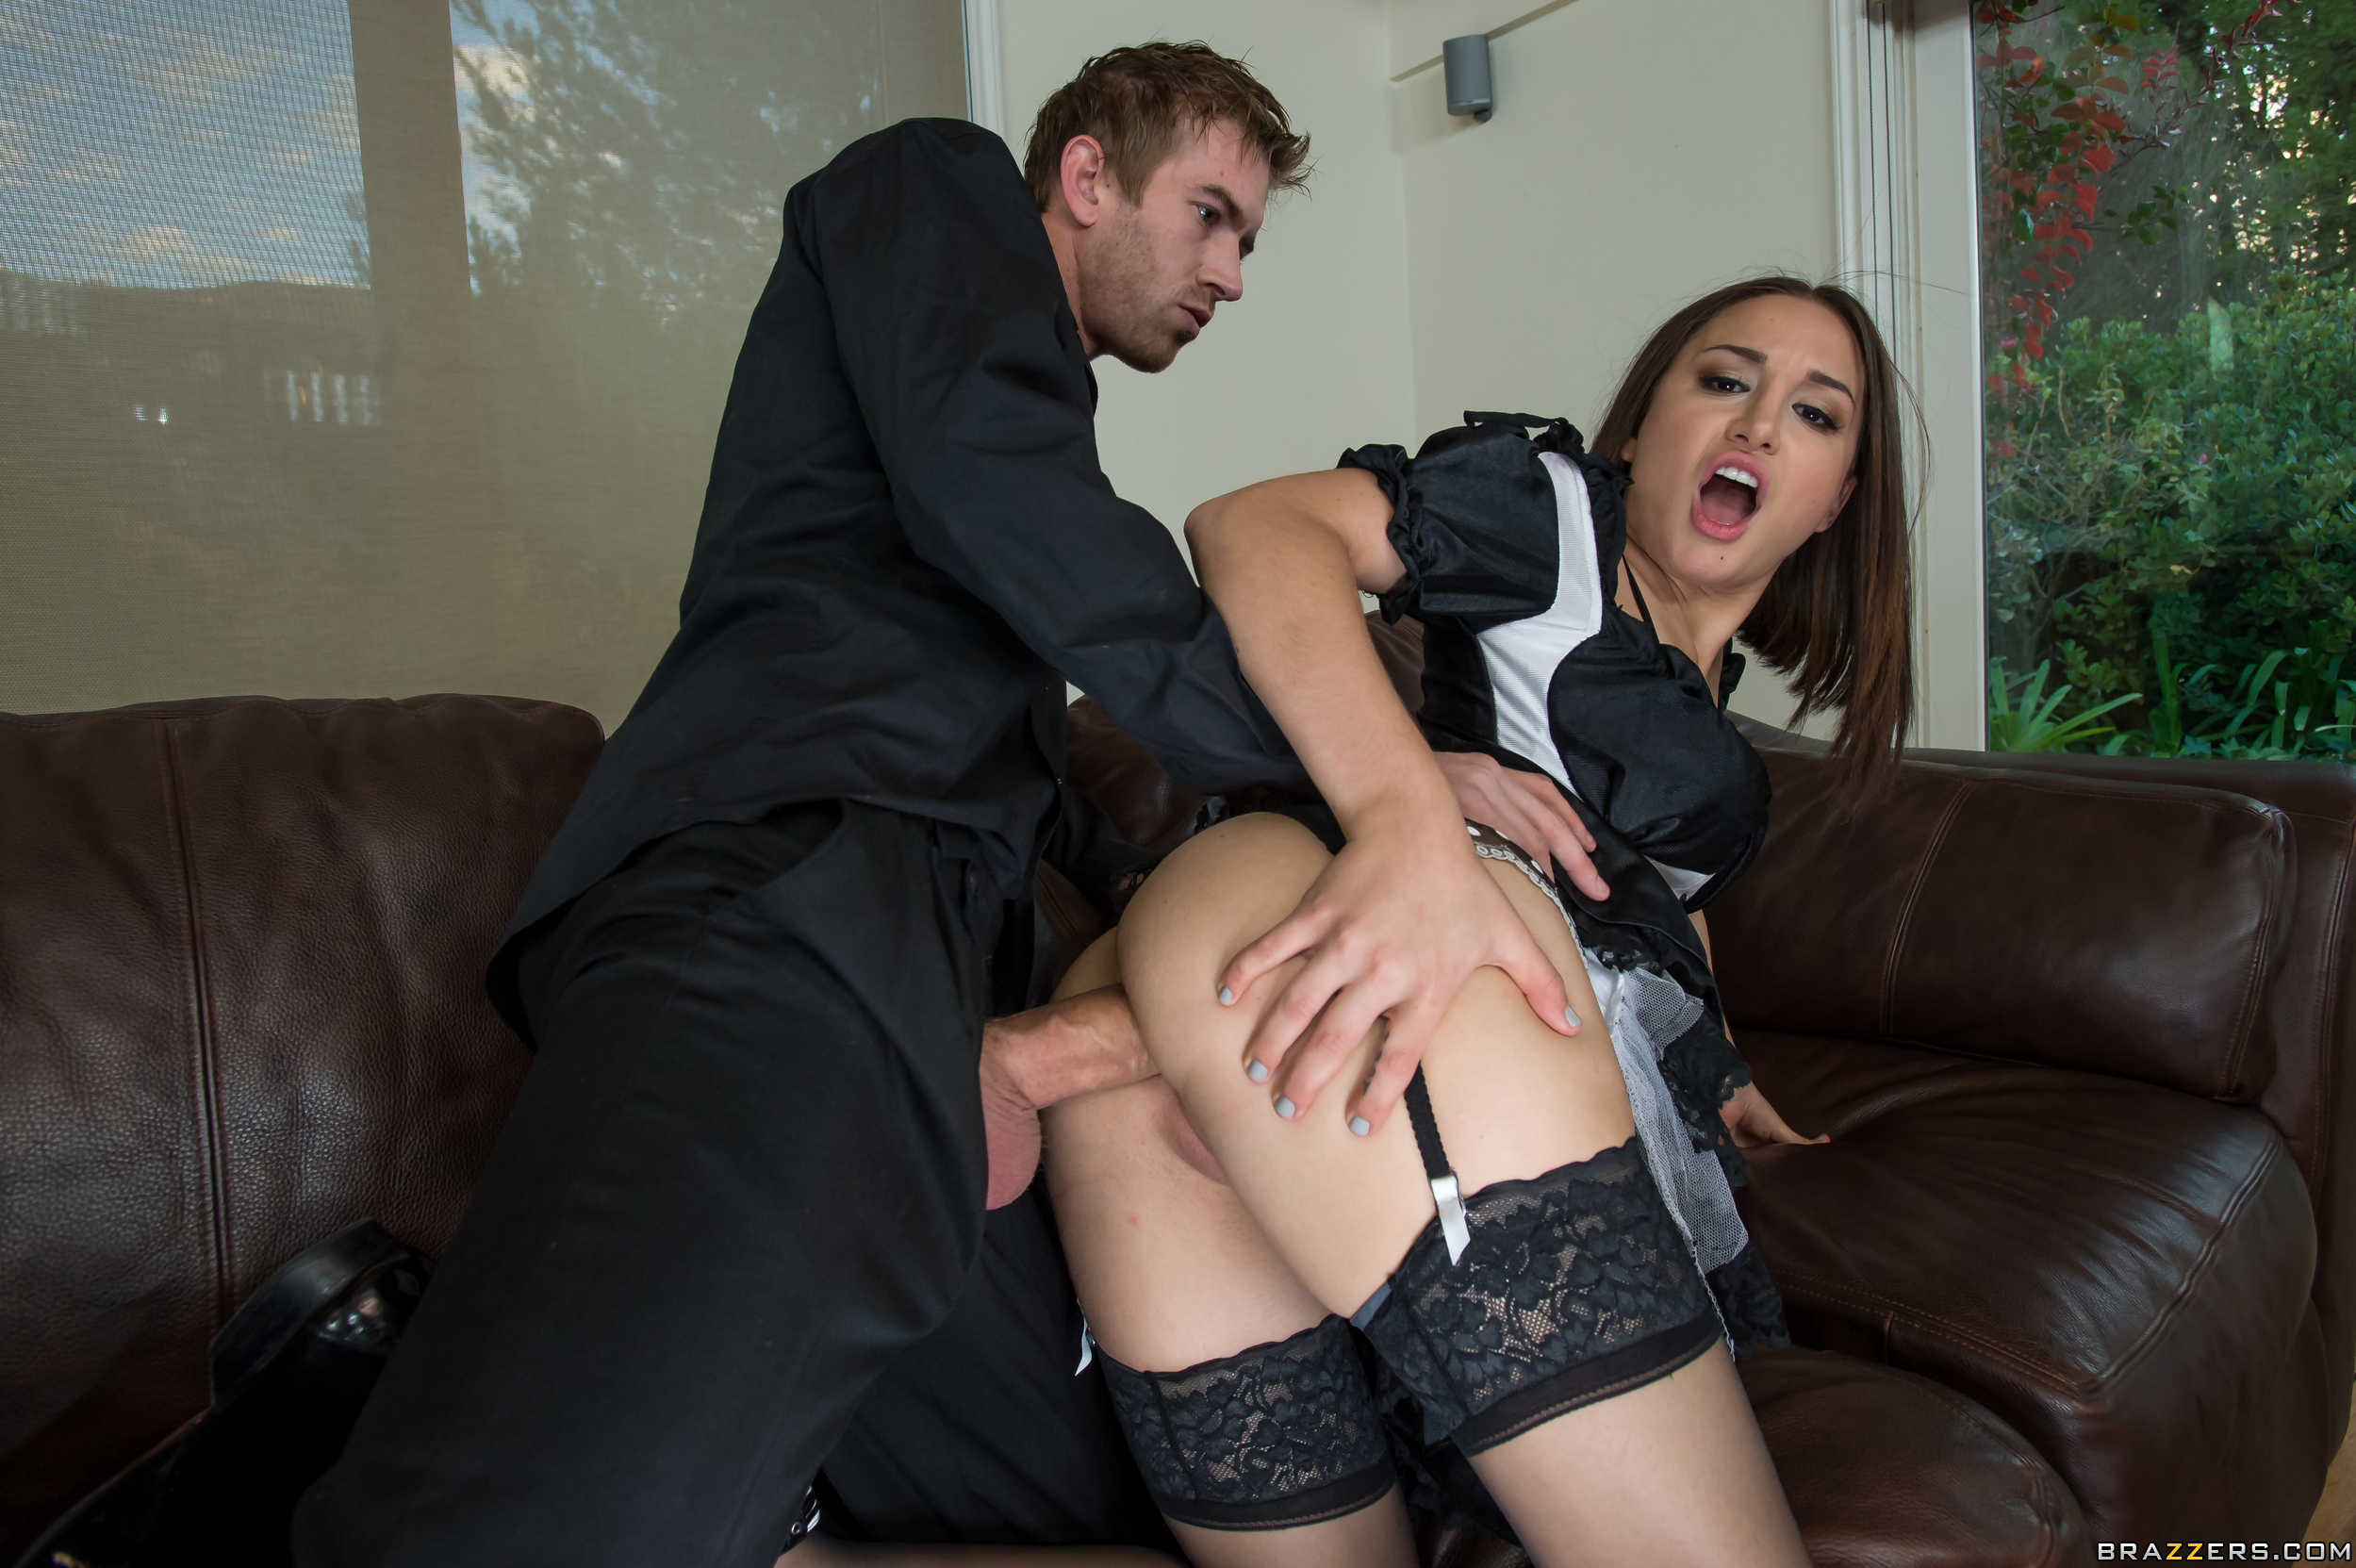 She loves to play master and servant